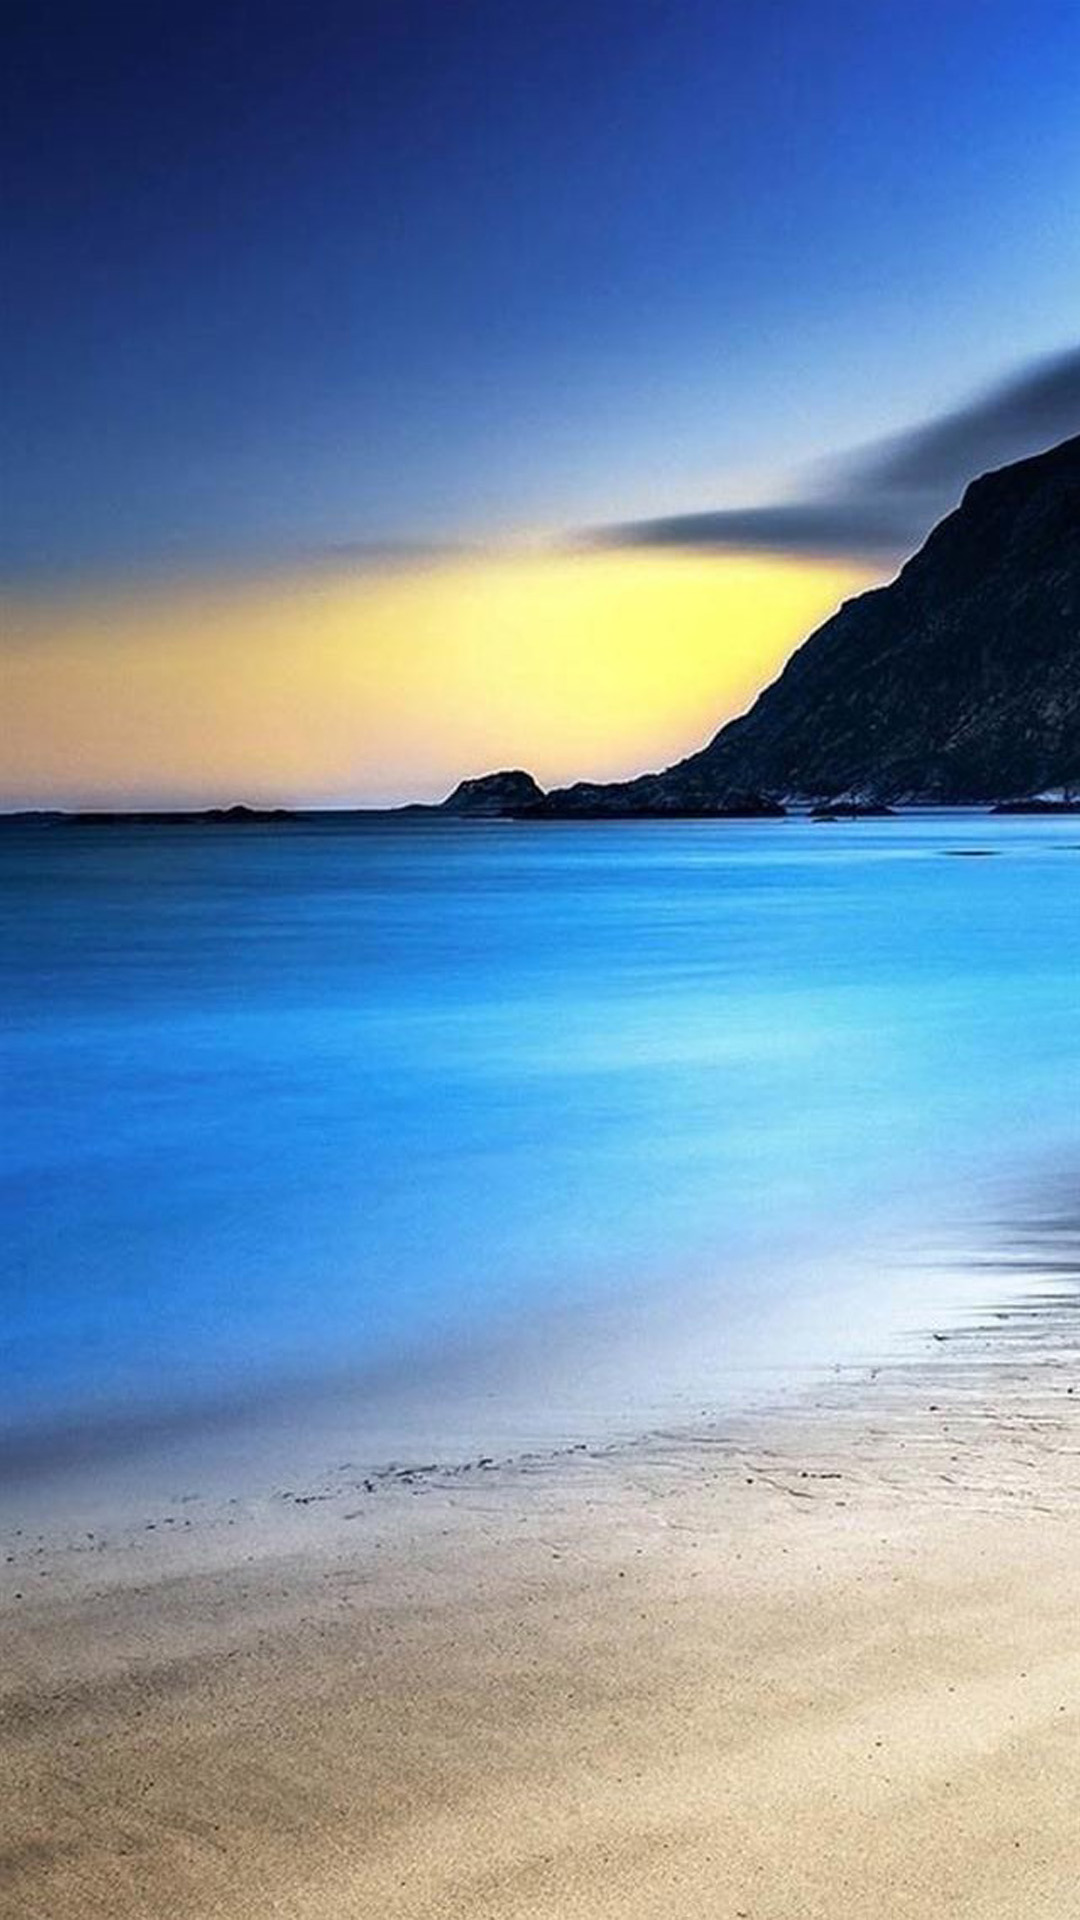 Nature-Pure-Beach-Landscape-iPhone-6-wallpaper.